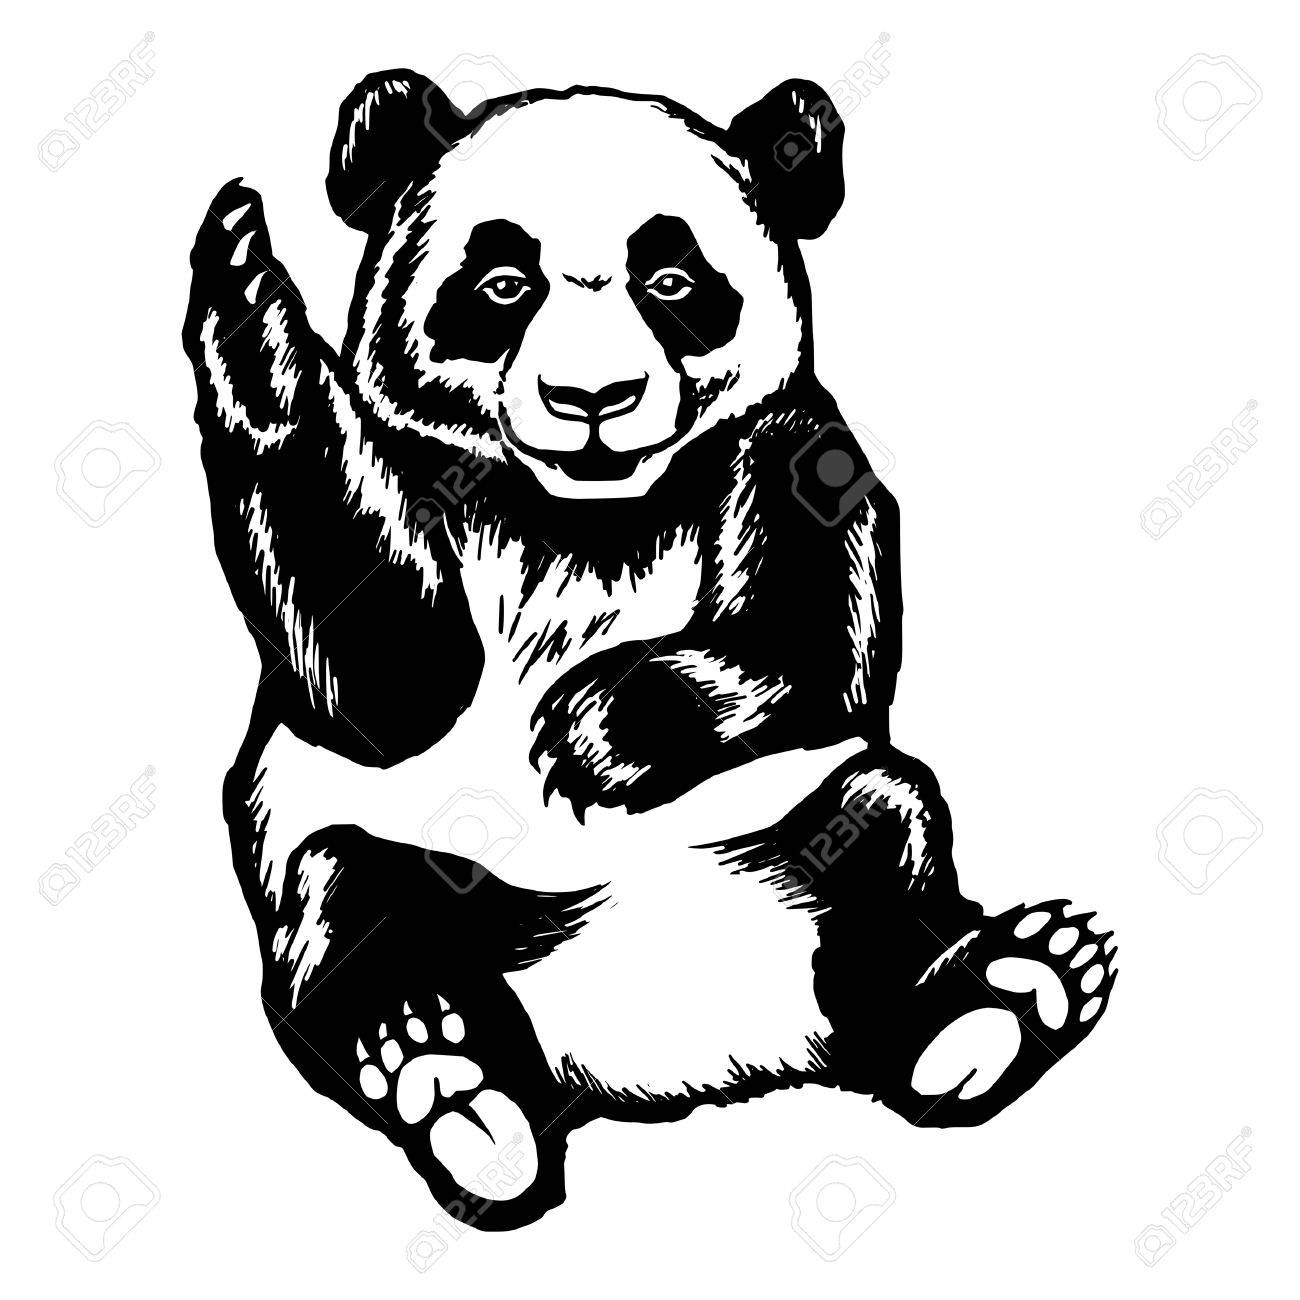 1300x1300 Hand Drawn Vector Sketch Silhouette Linear Illustration Of Panda